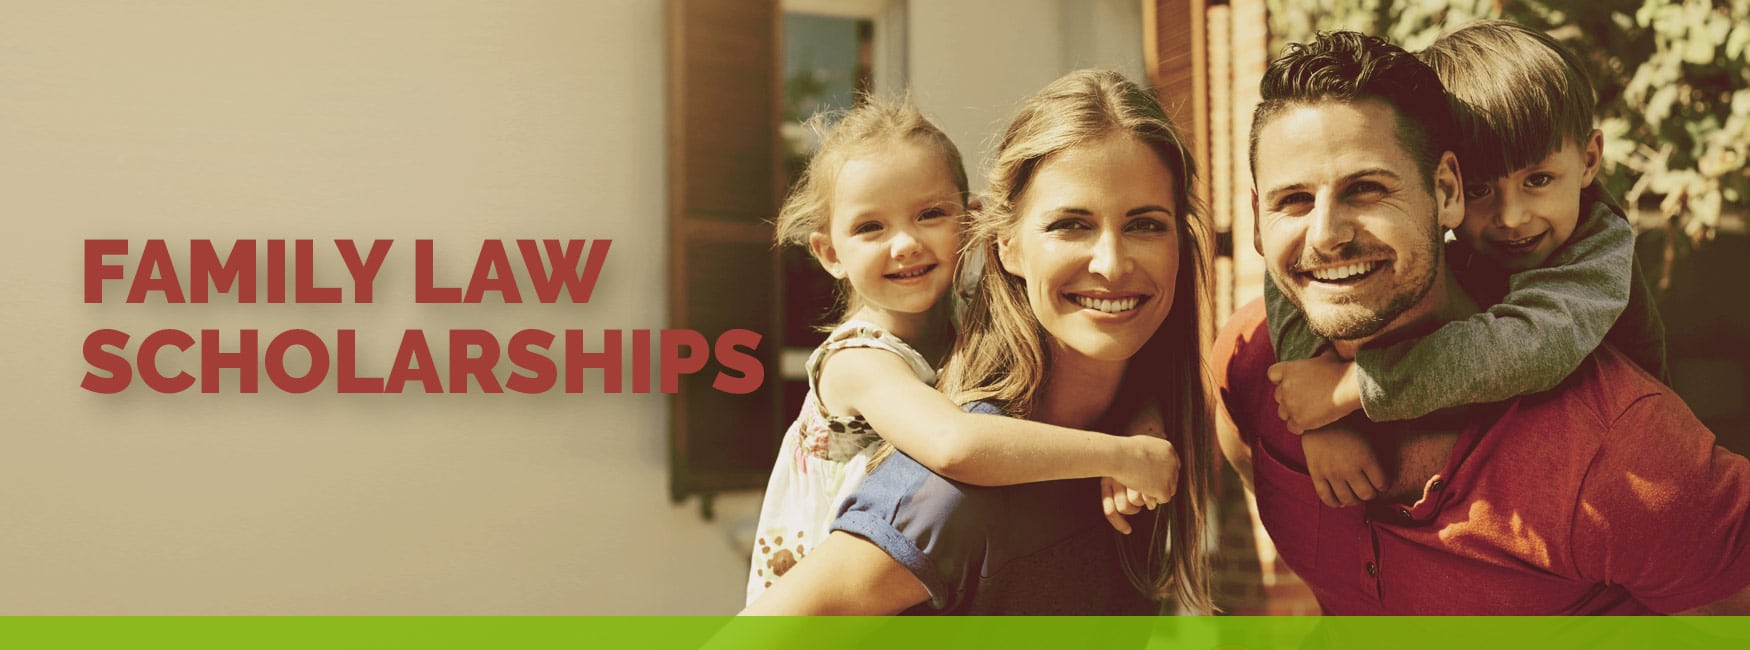 Main photo on page describing family law scholarships offered by Chandler divorce attorney Joan Bundy.